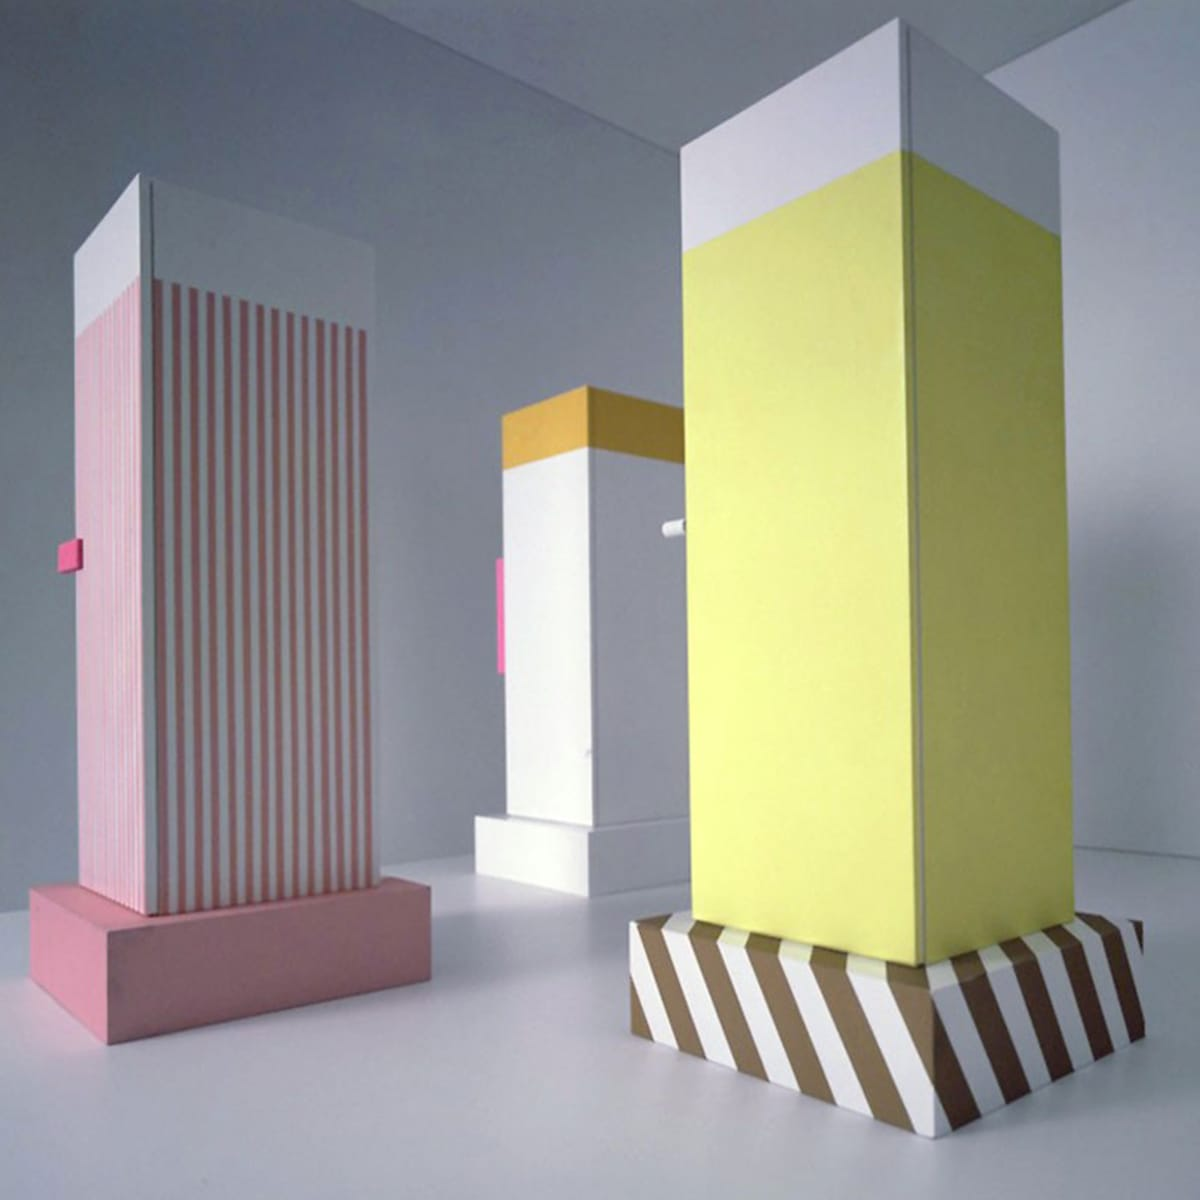 Sottsass' Superboxes, designed circa 1960 for Poltronova.